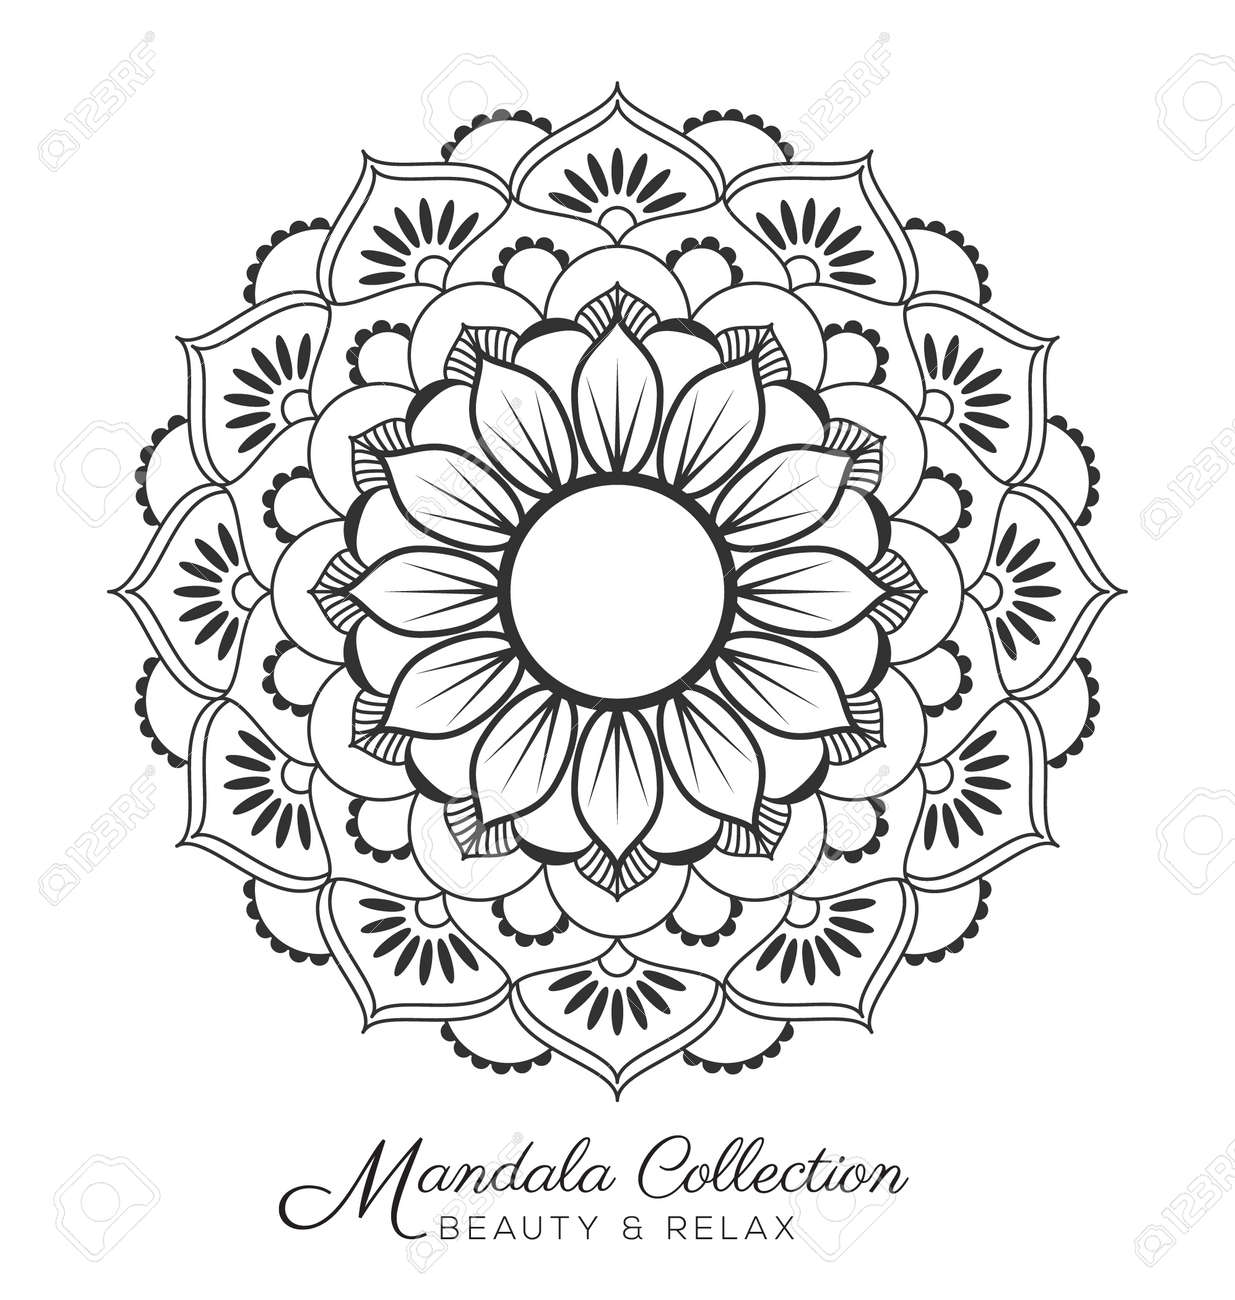 mandala decorative ornament design for coloring page greeting